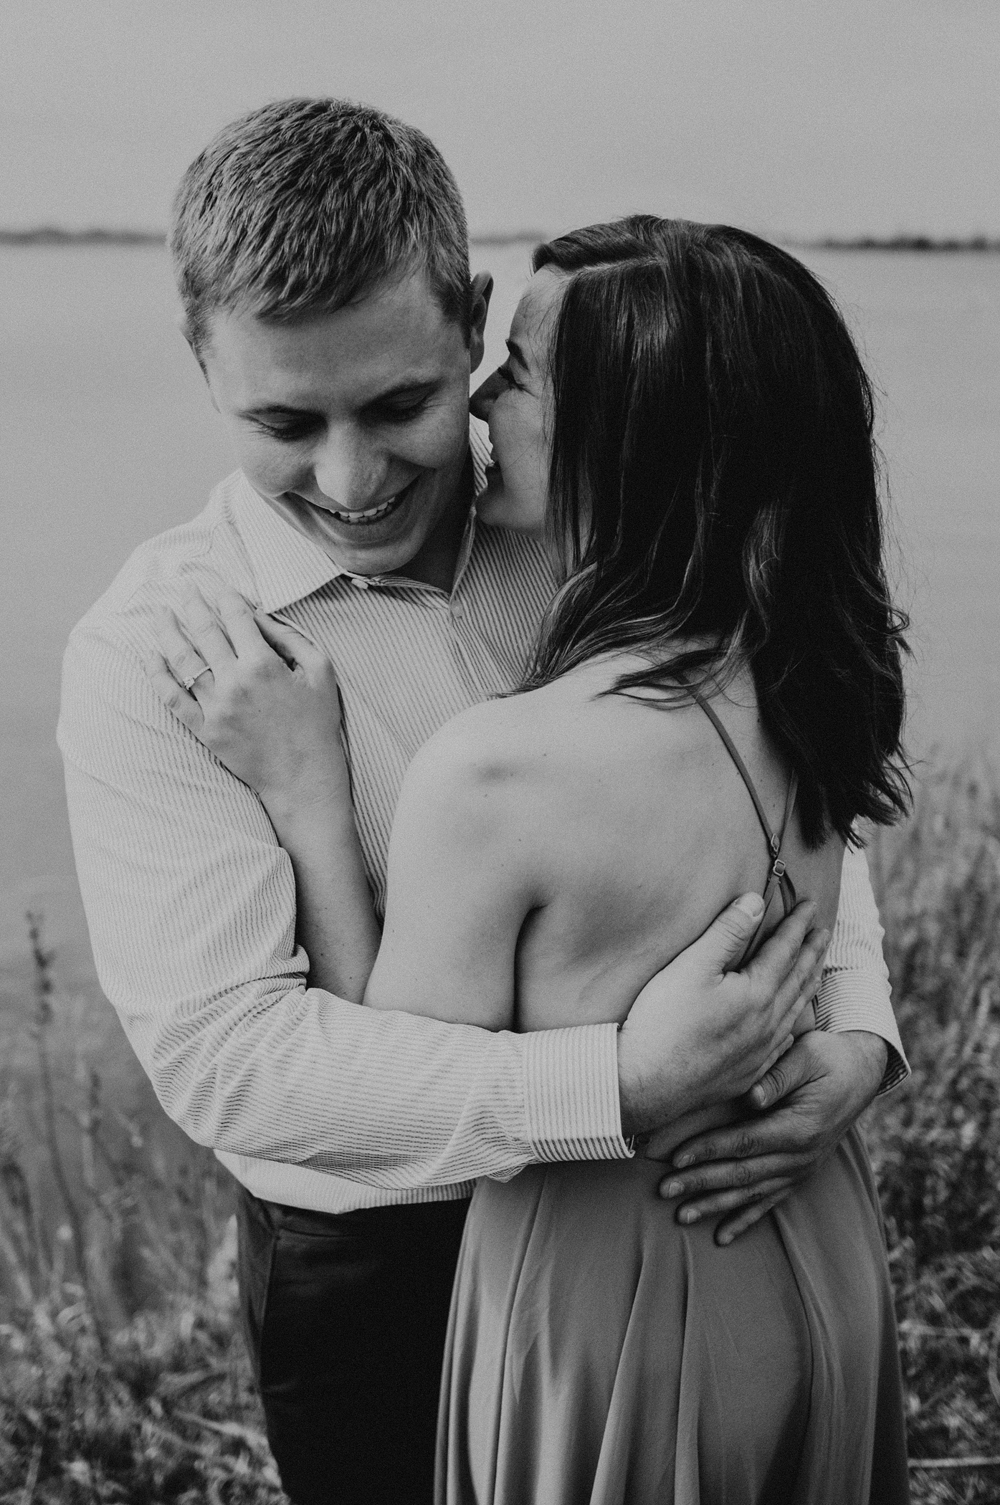 kaylie-sirek-nebraska-wedding-engagement-photographer-photography-grand-island-kearney-hastings-lincoln-07.png